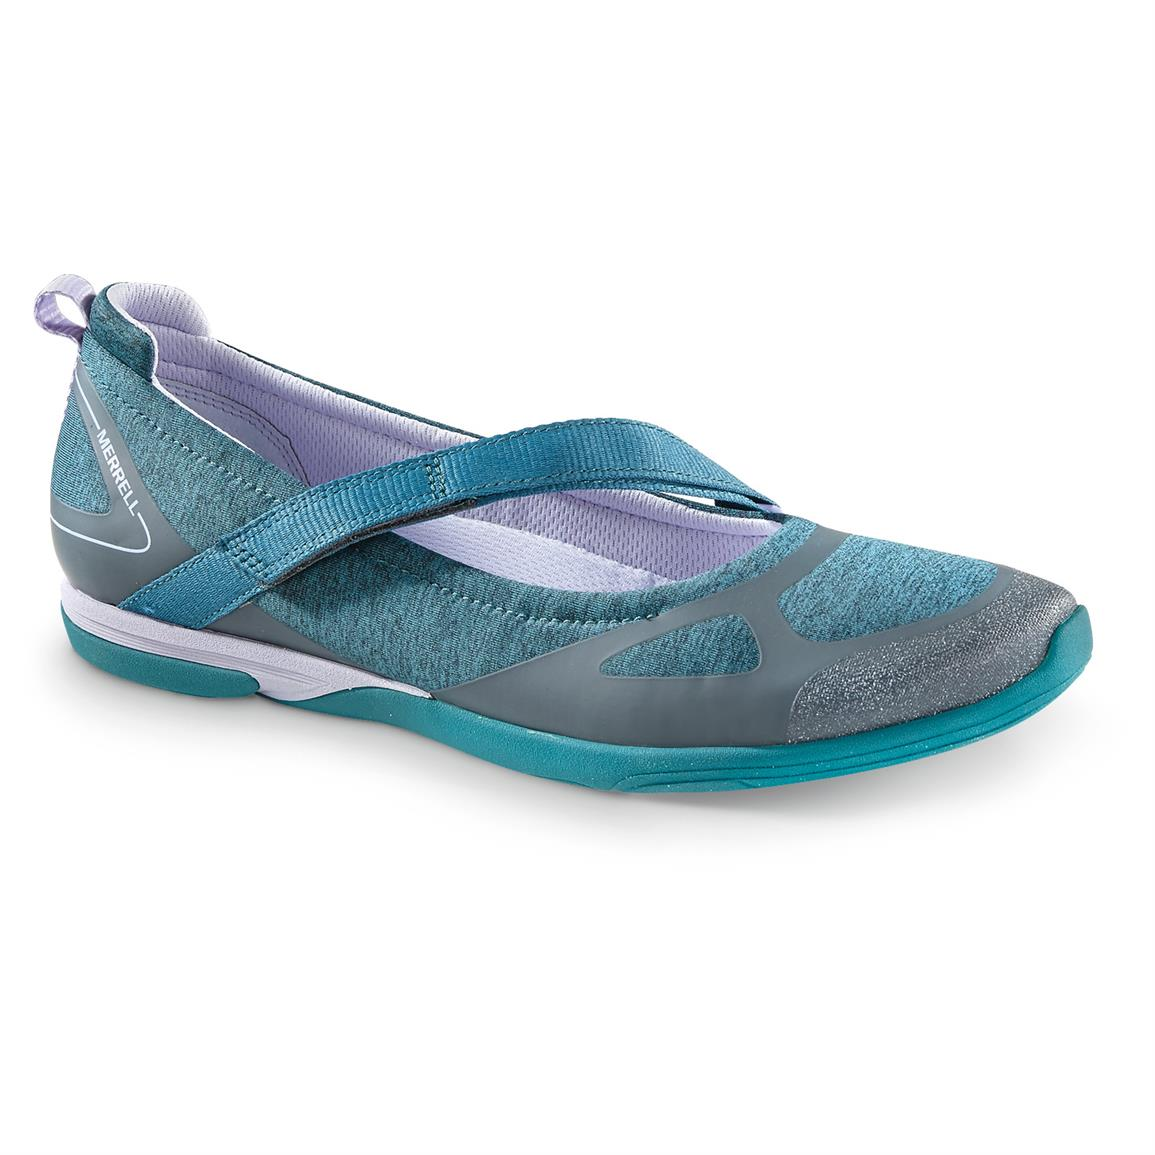 Women's Merrell Ceylon Mary Jane Shoes, Teal / Lilac